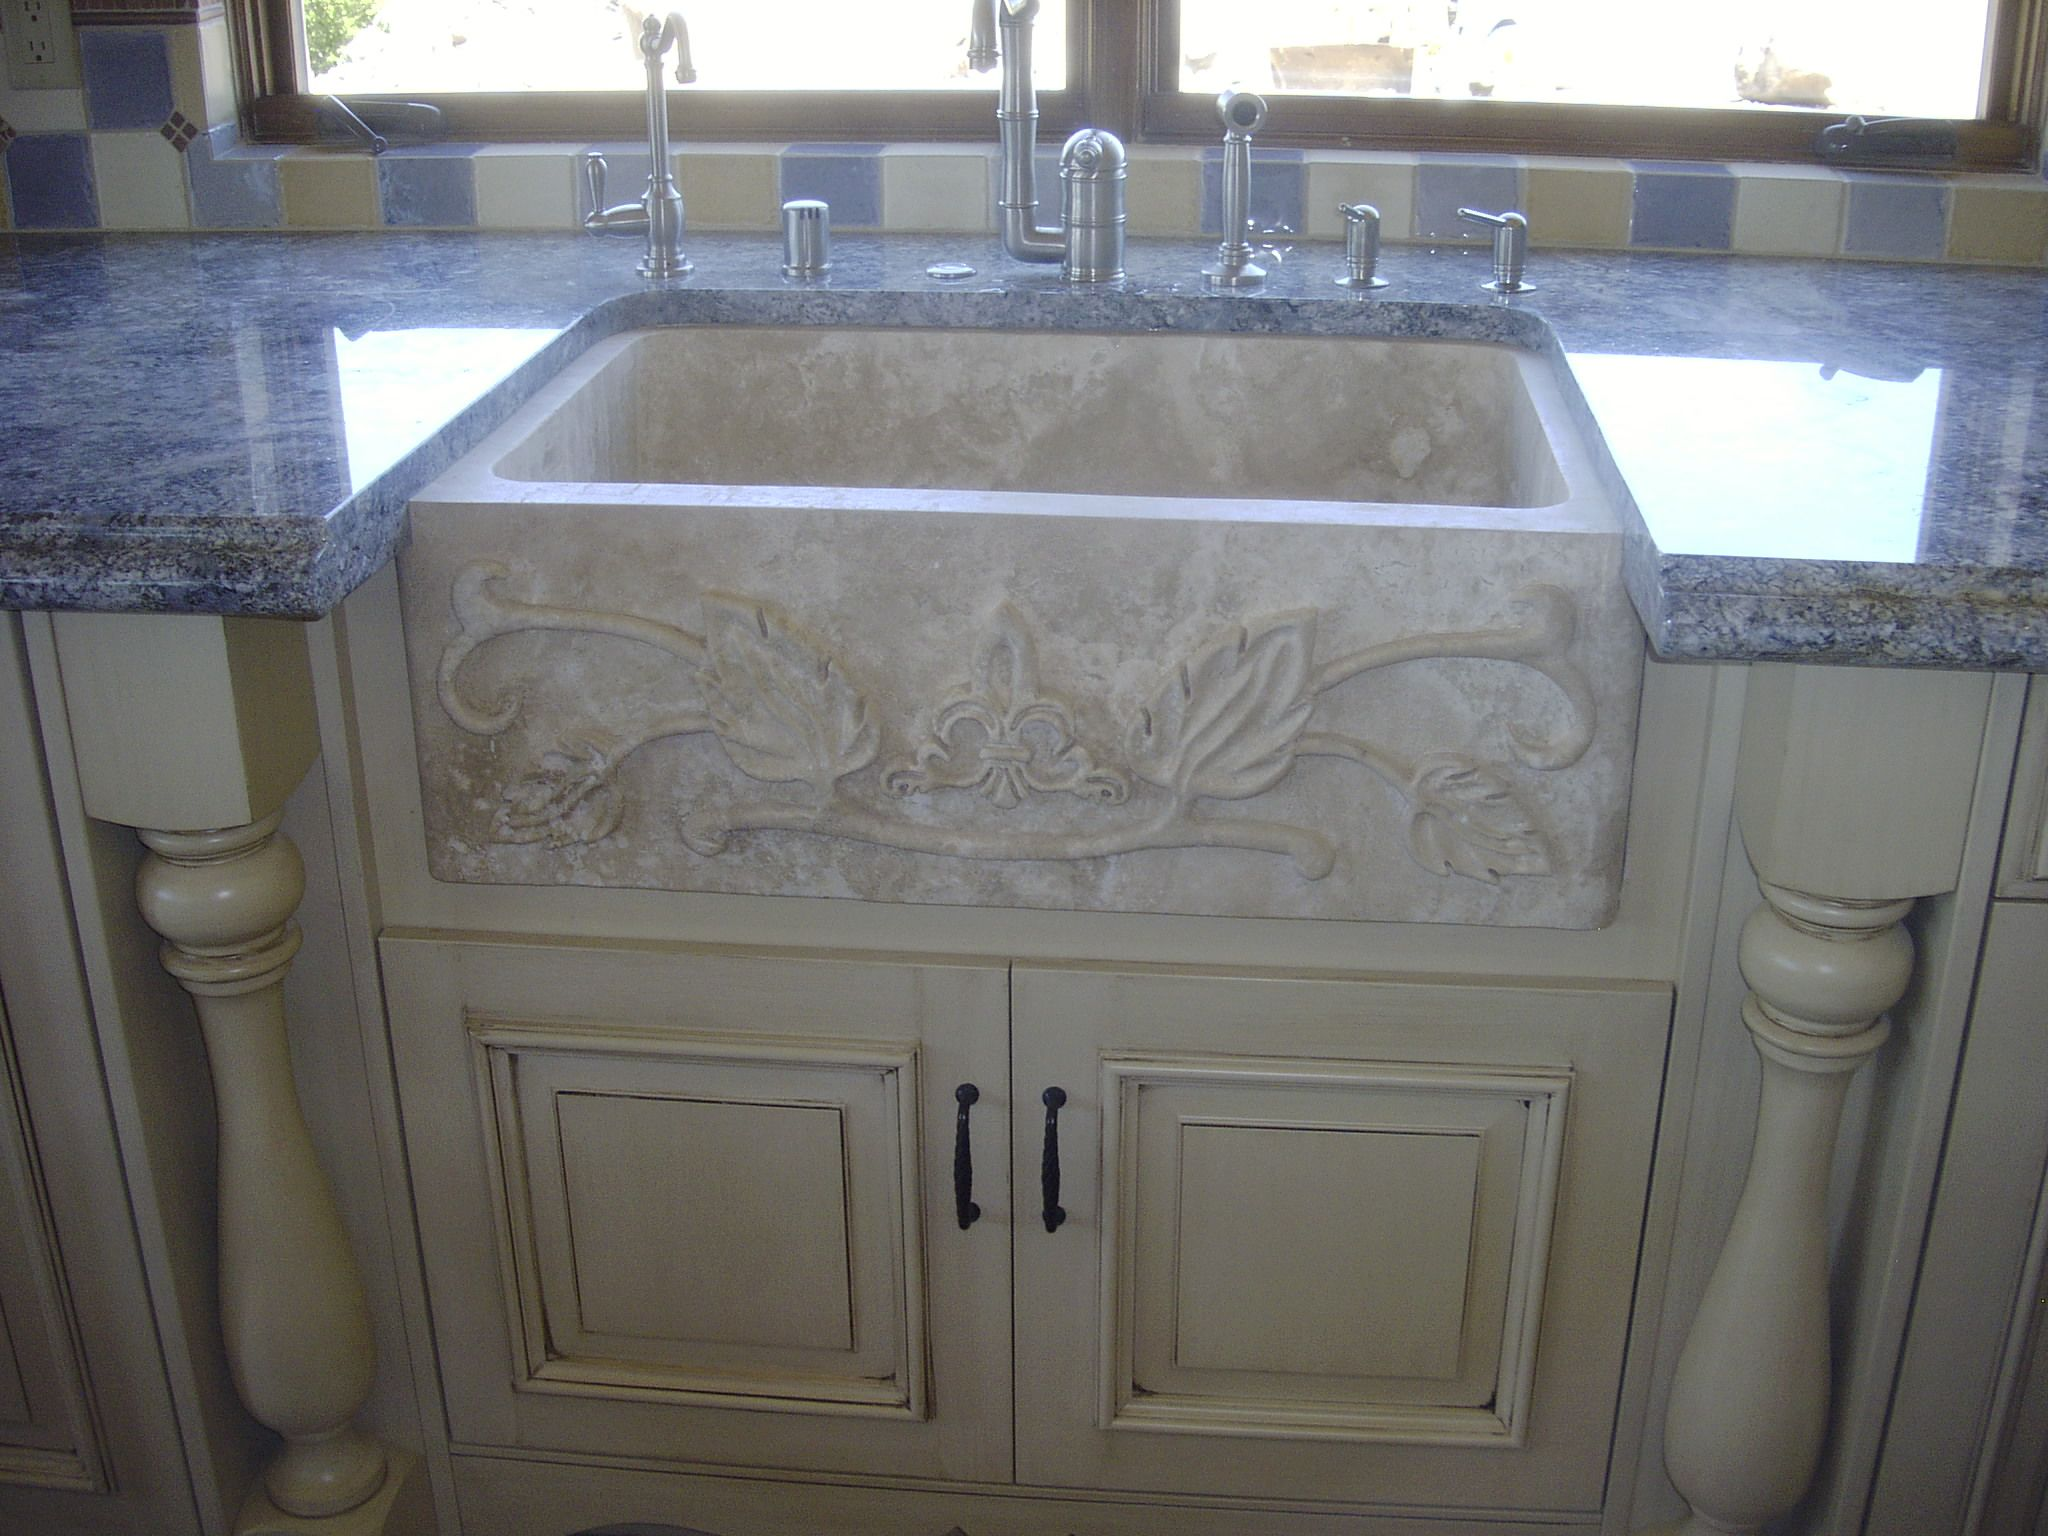 Travertine sinks sale 28 images round polished for Antique stone sinks for sale